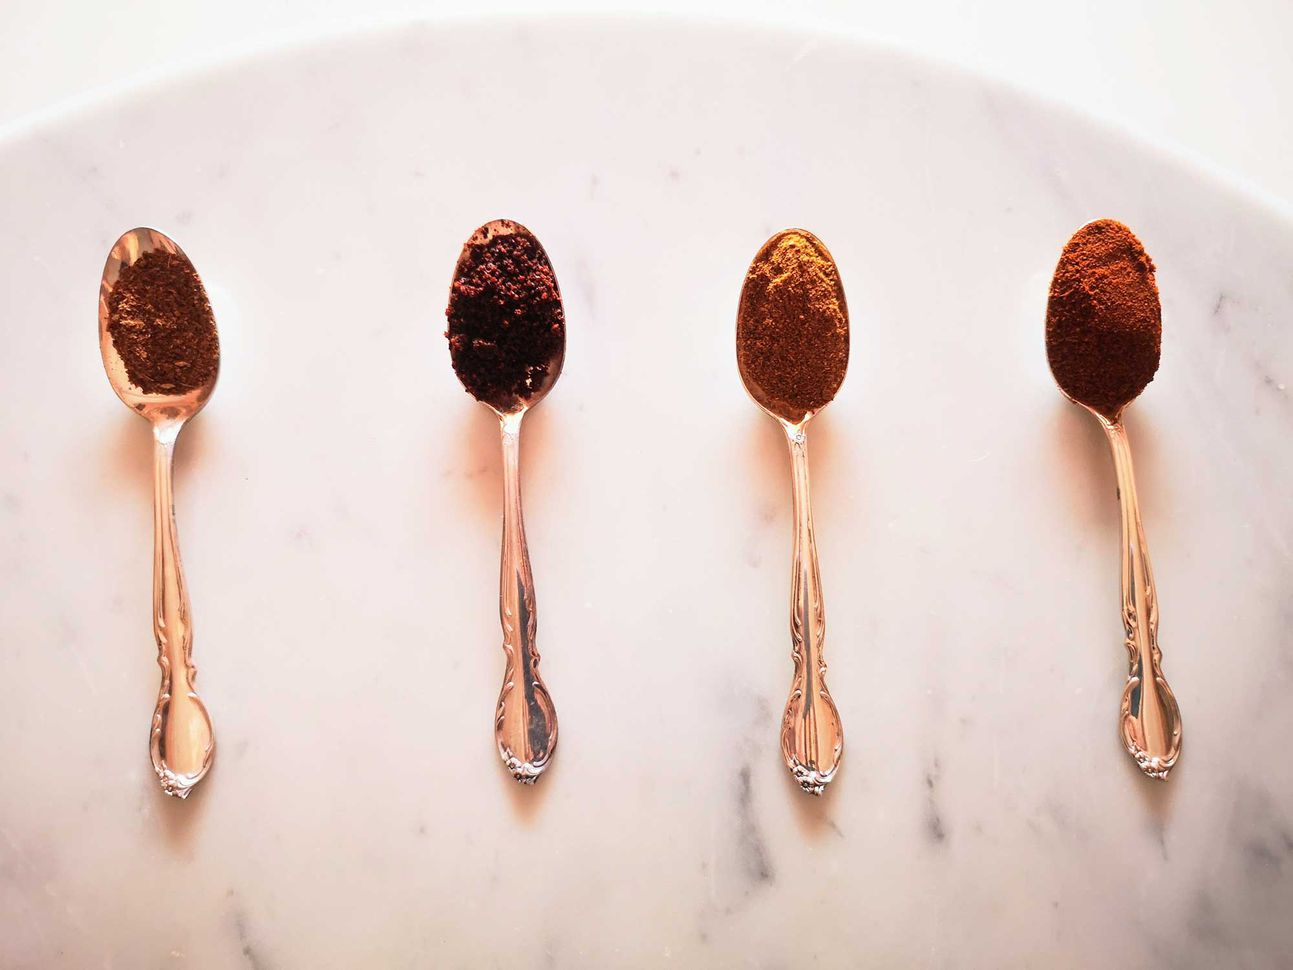 Four gold spoons with reddish spice blends on a marble table